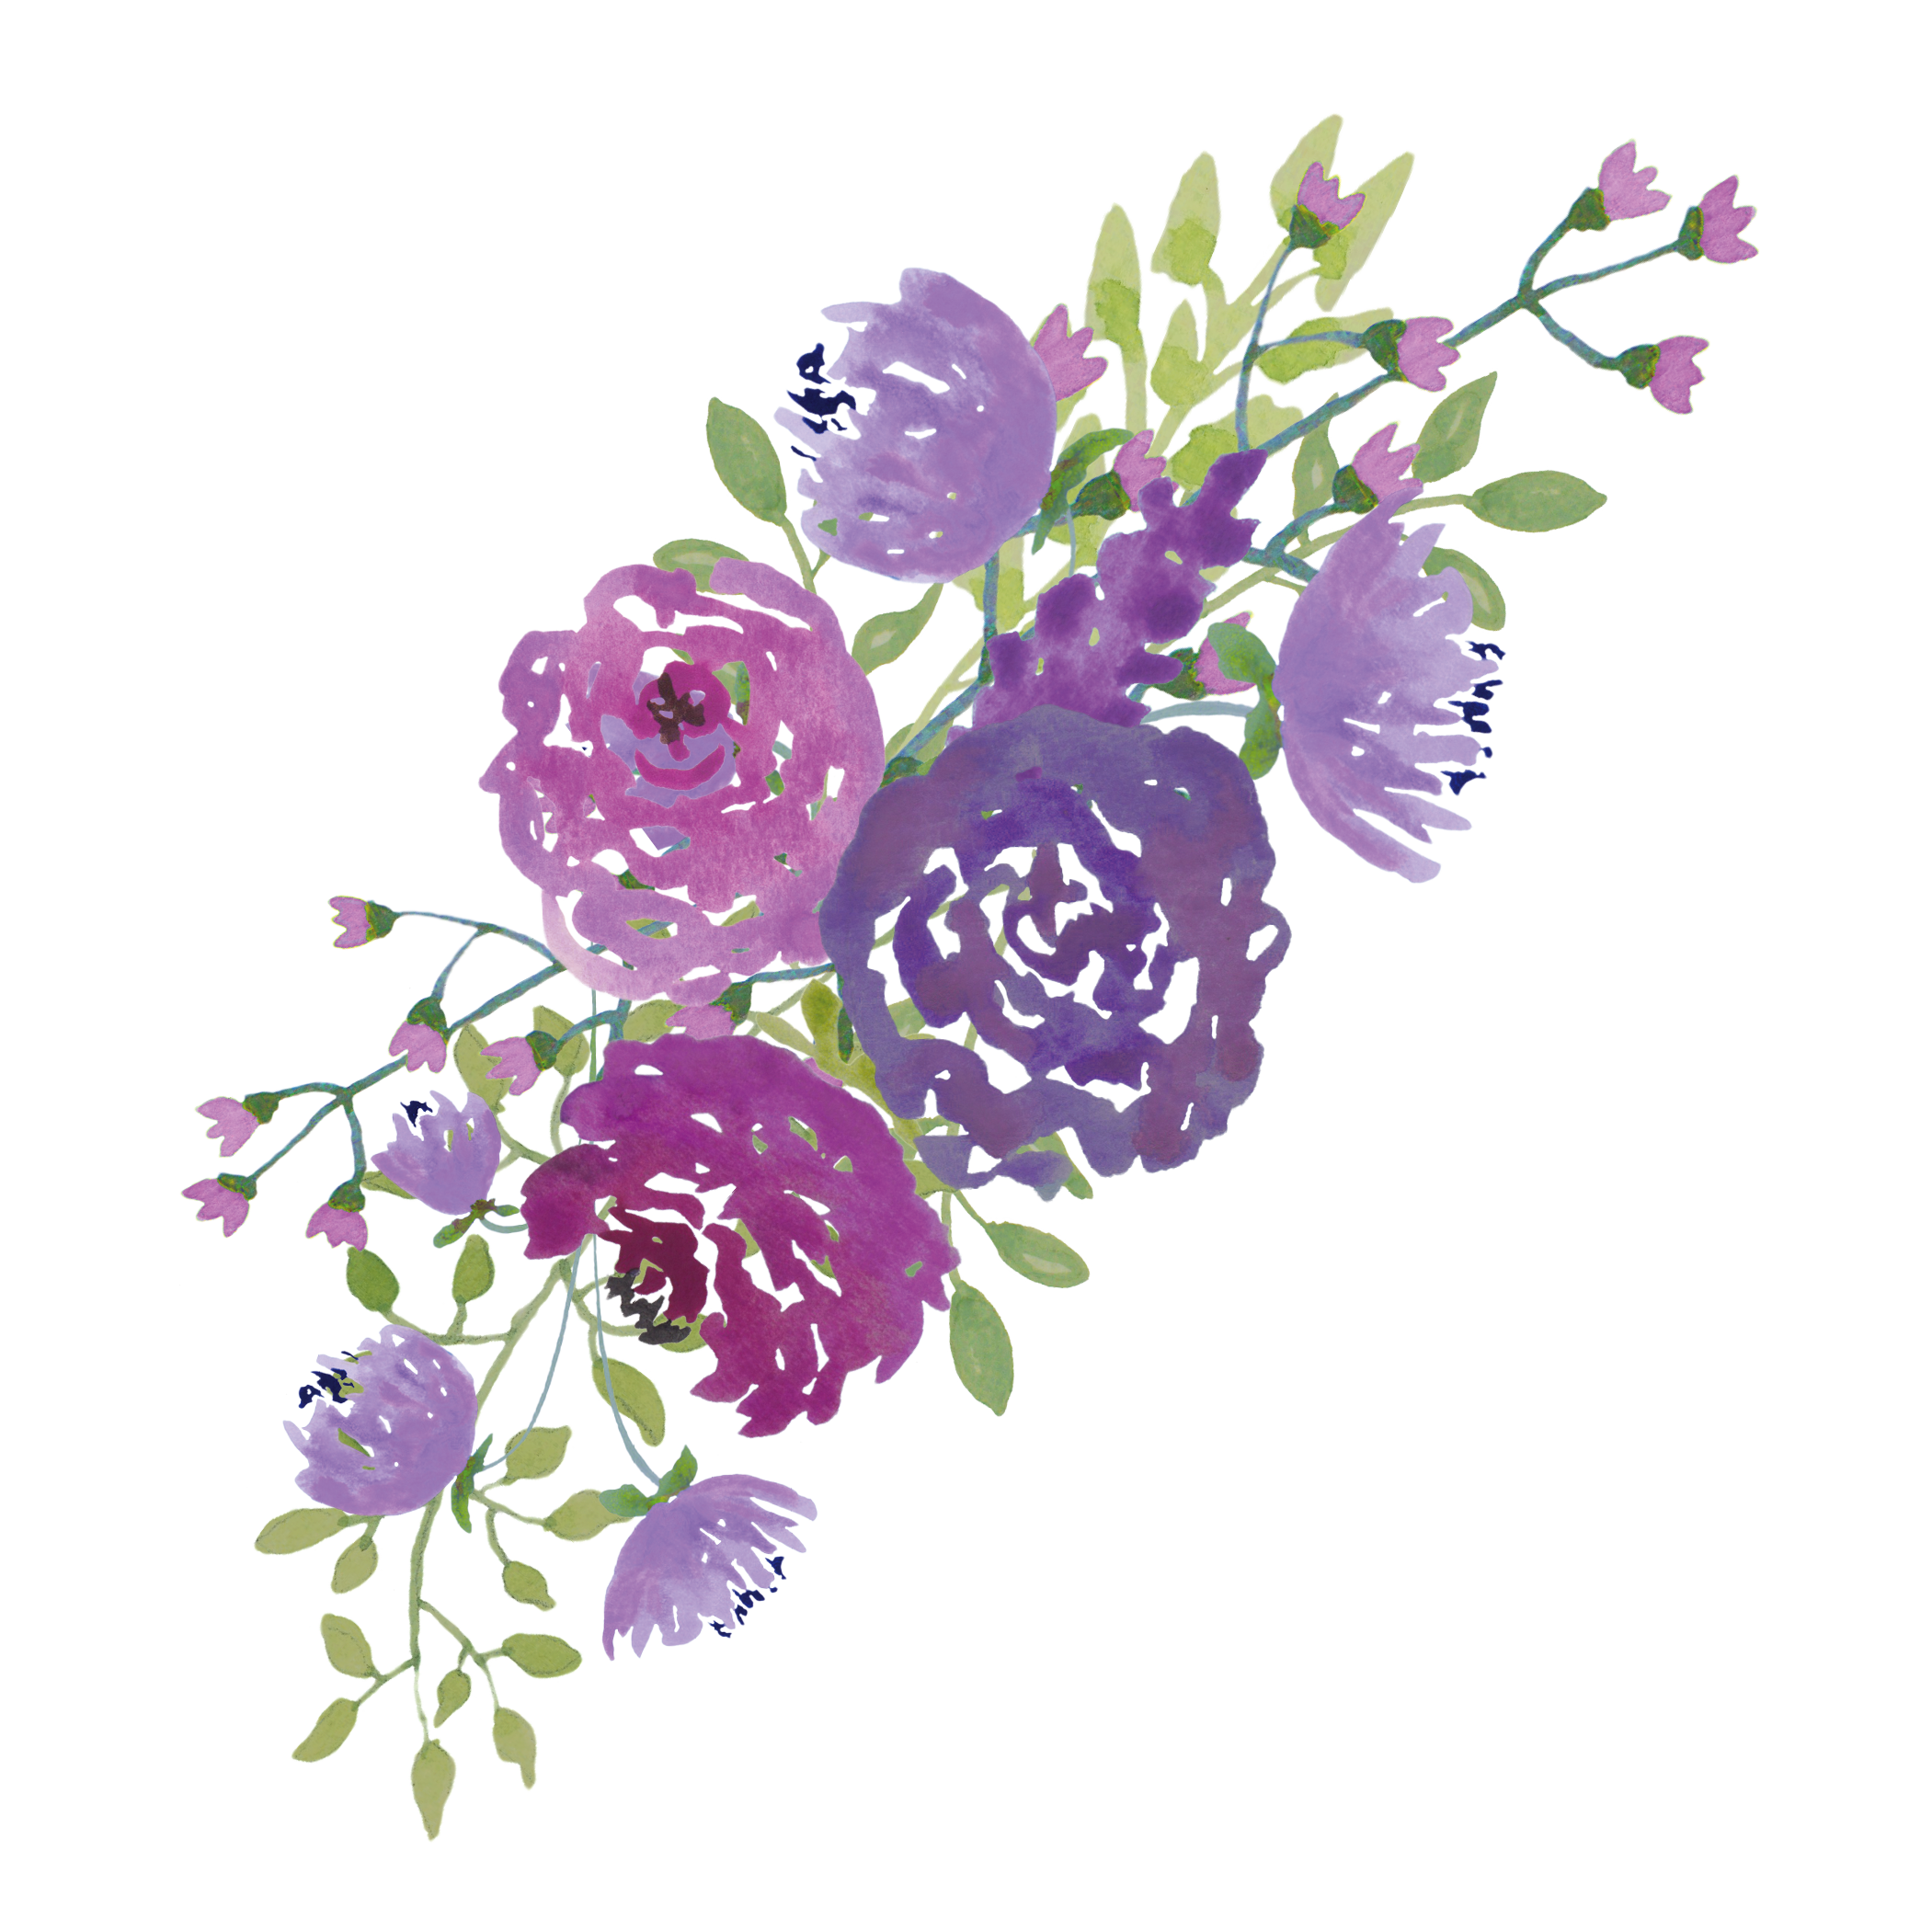 Purple Wedding Png - Pin by Tiffany Grady on Prints | Free watercolor flowers, Purple ...